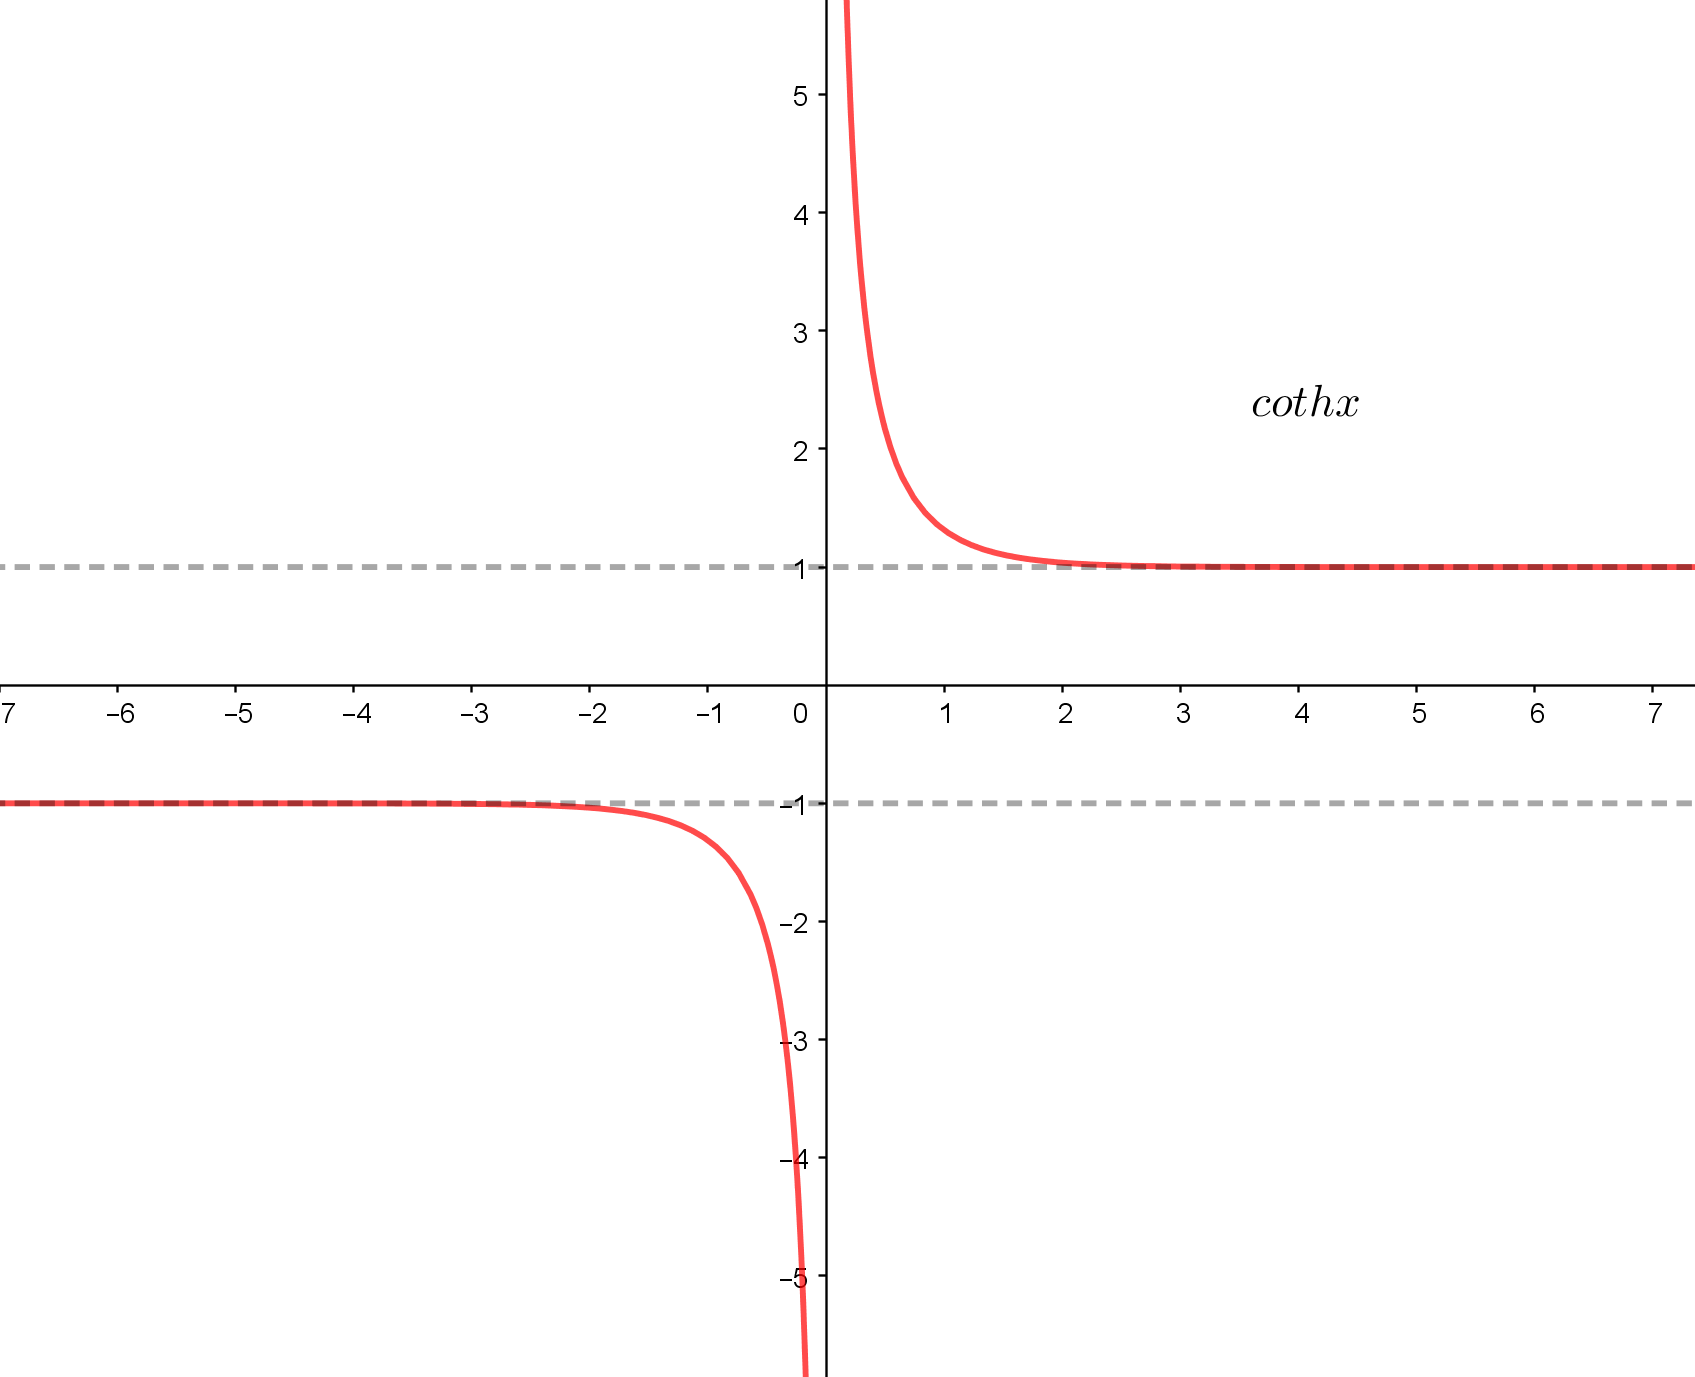 Graphs Of Hyperbolic Functions